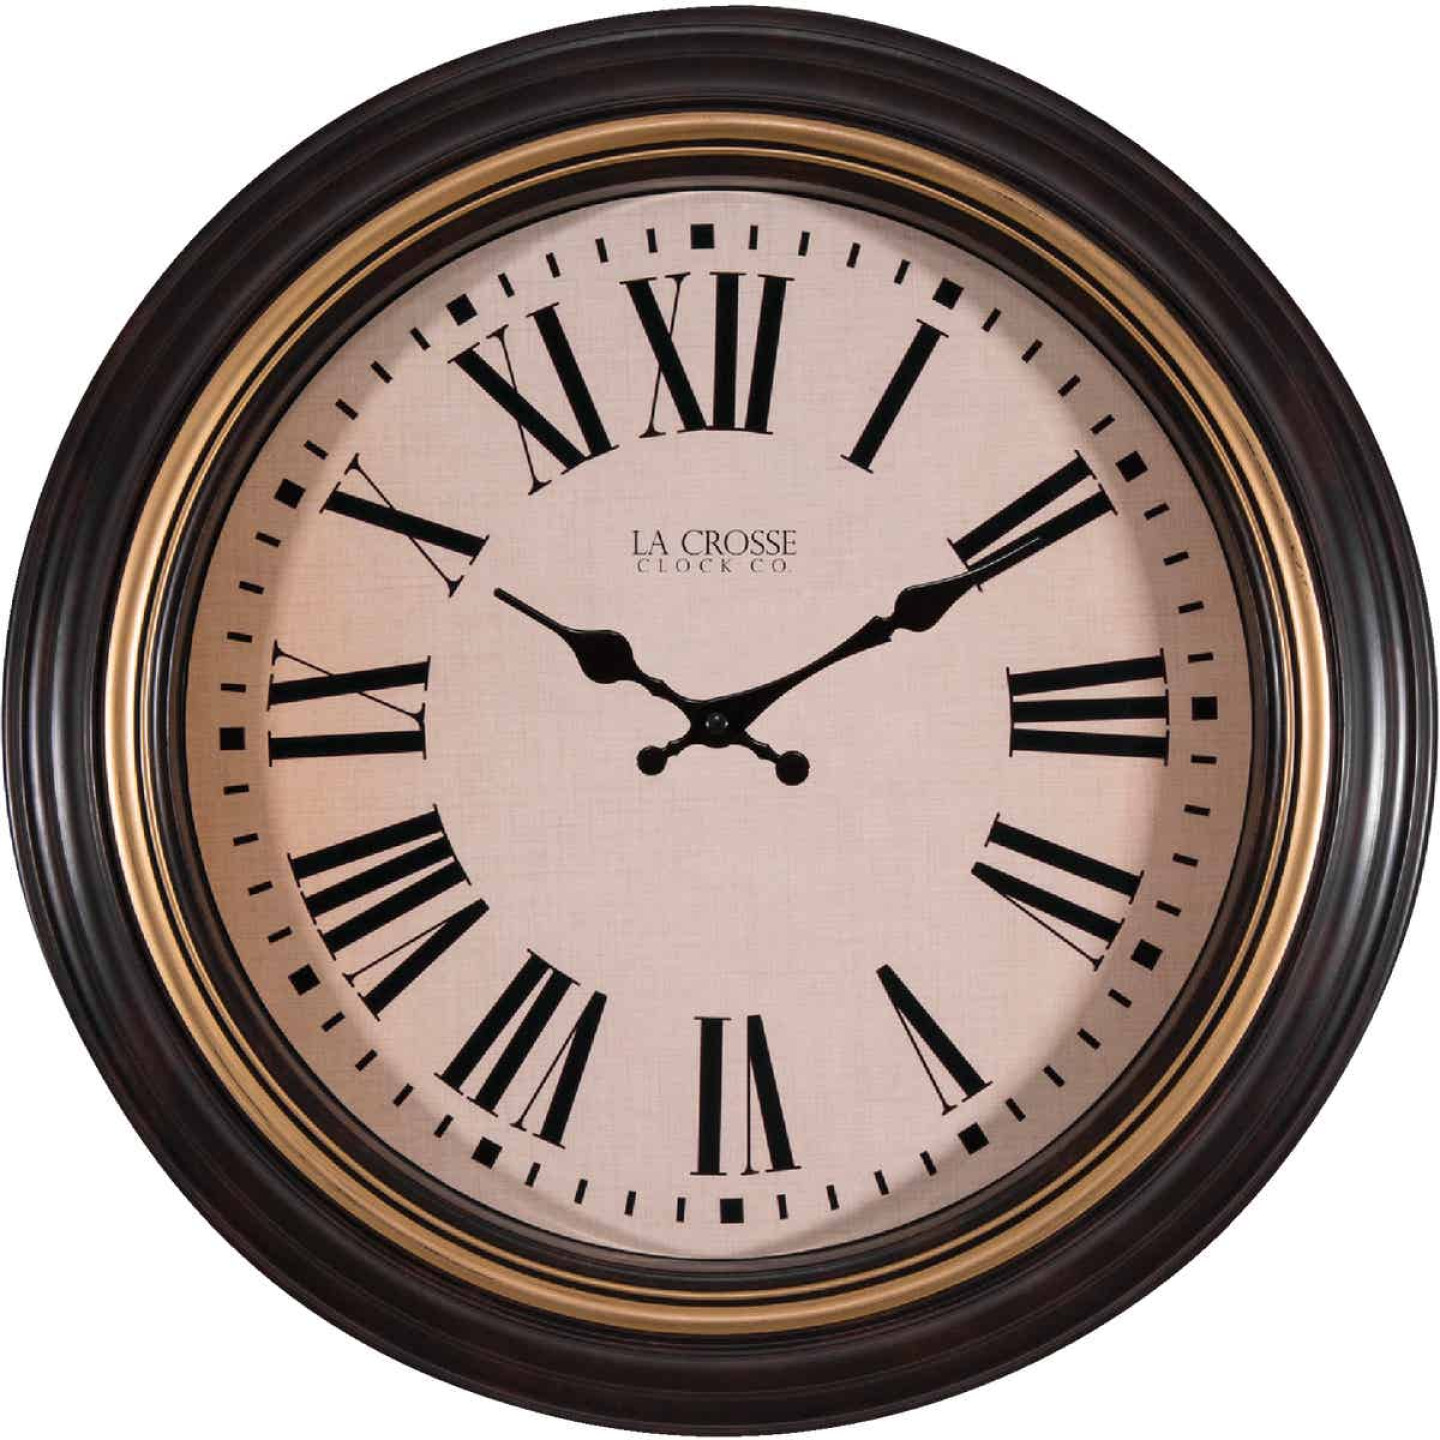 La Crosse Clock Quartz Wall Clock Image 1